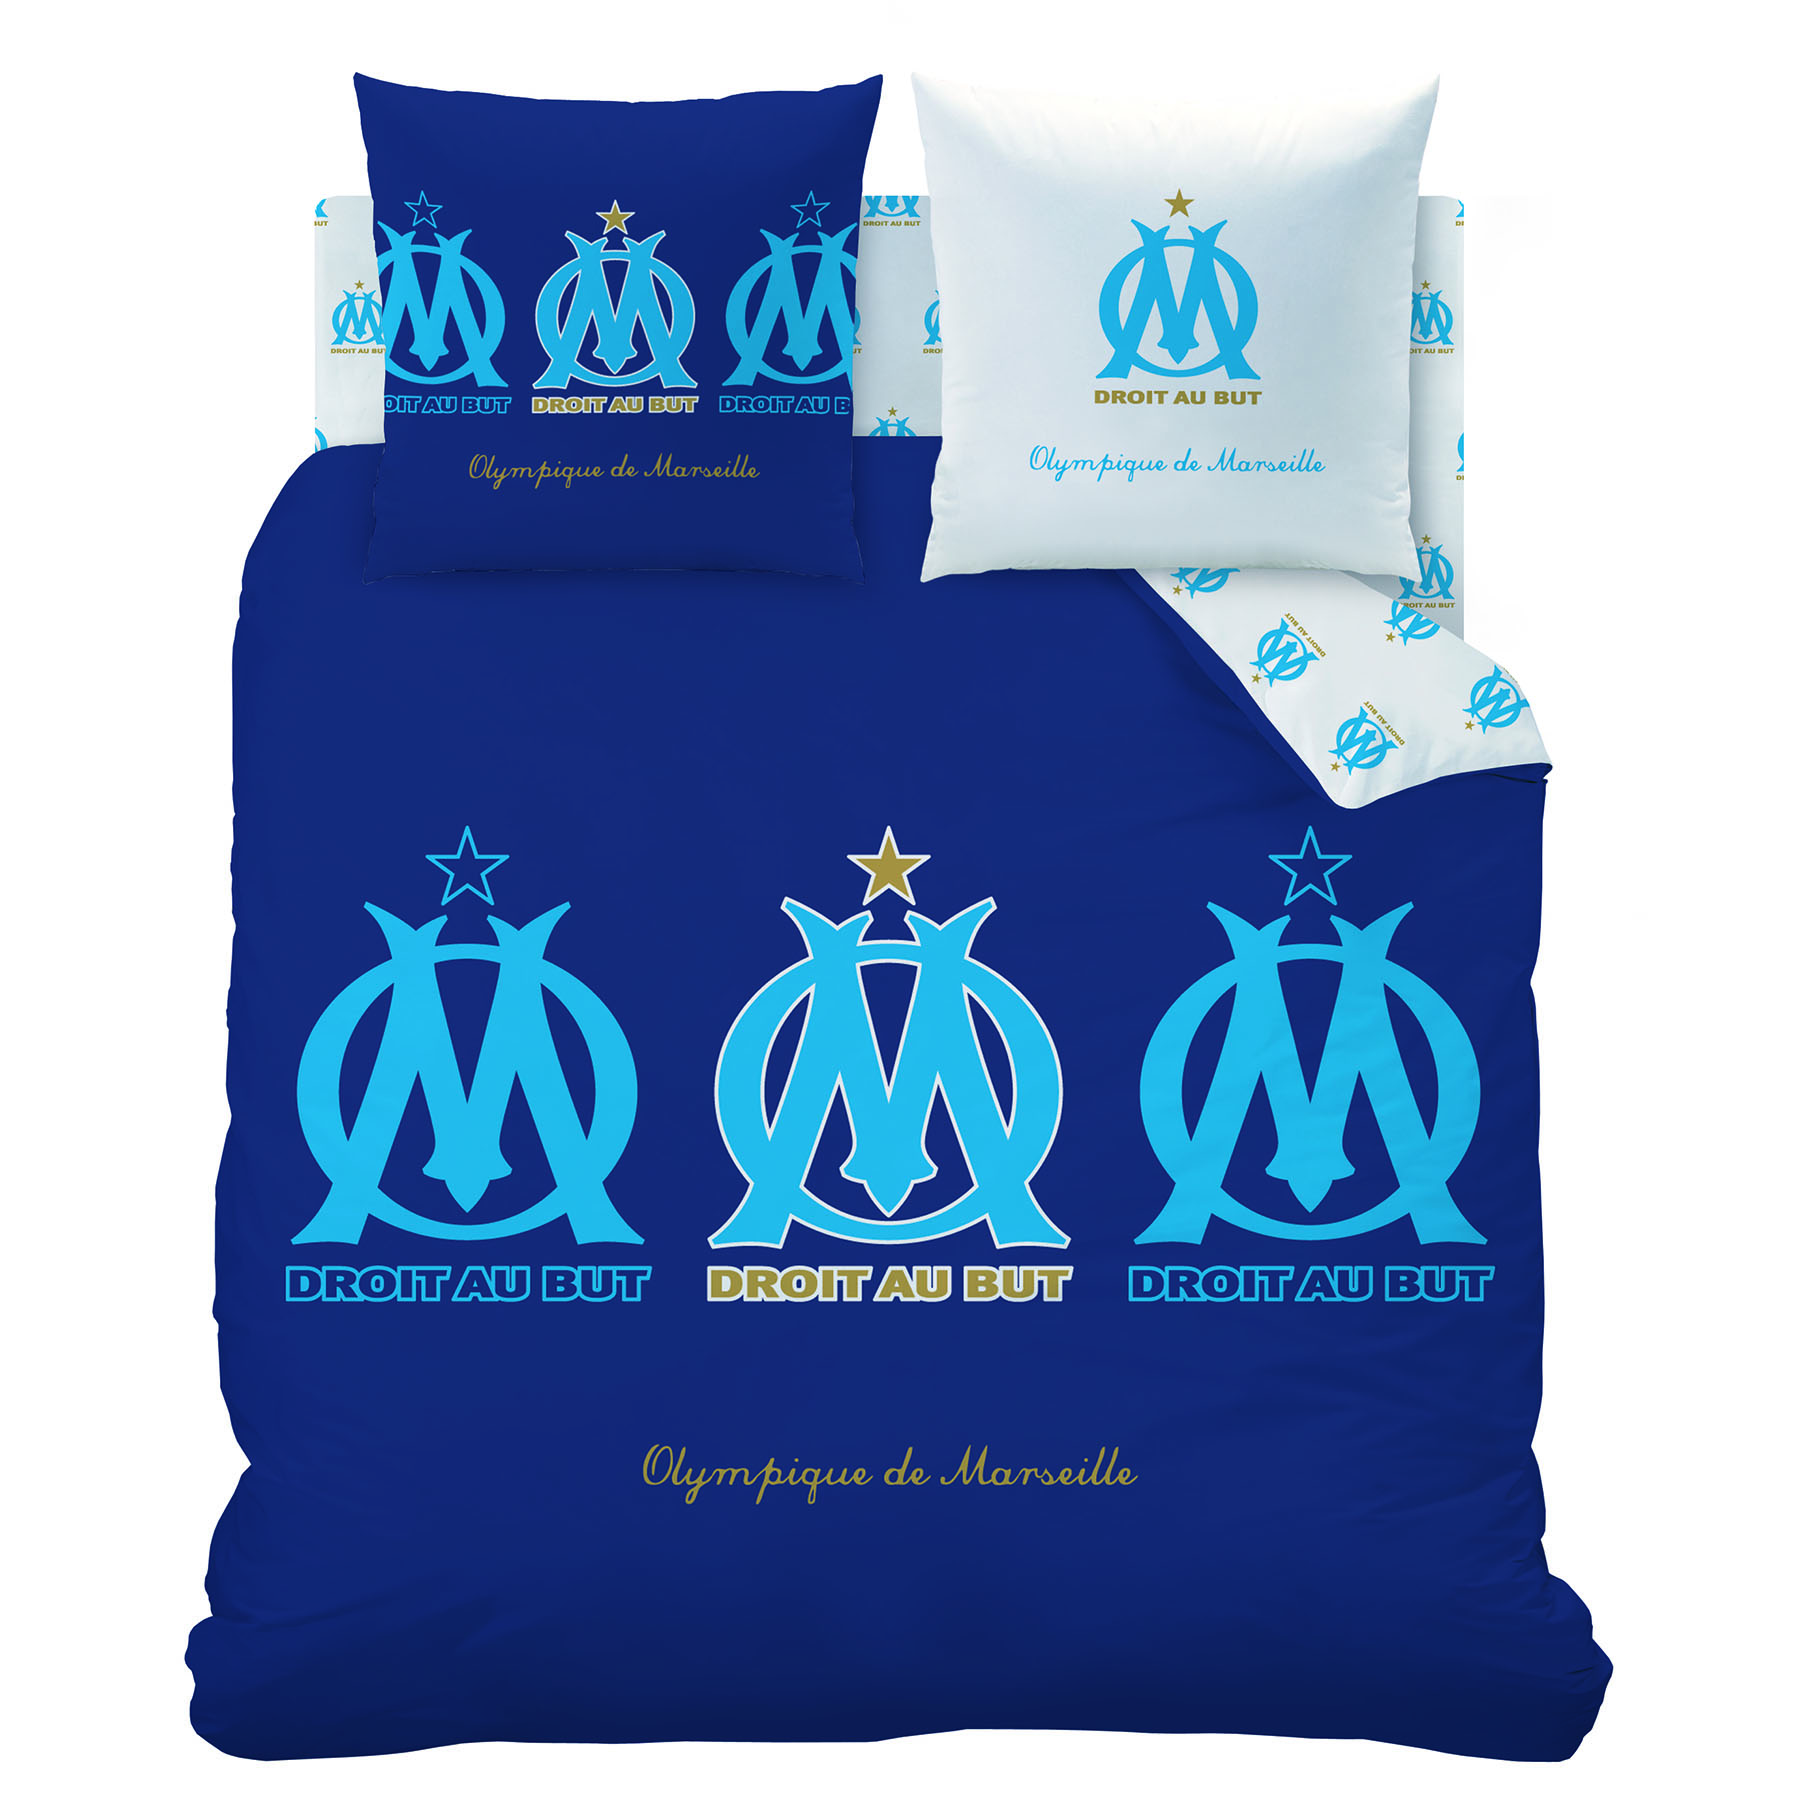 Olympique de Marseille Duvet Set with 2 pillowcase - 240 x 220 cm